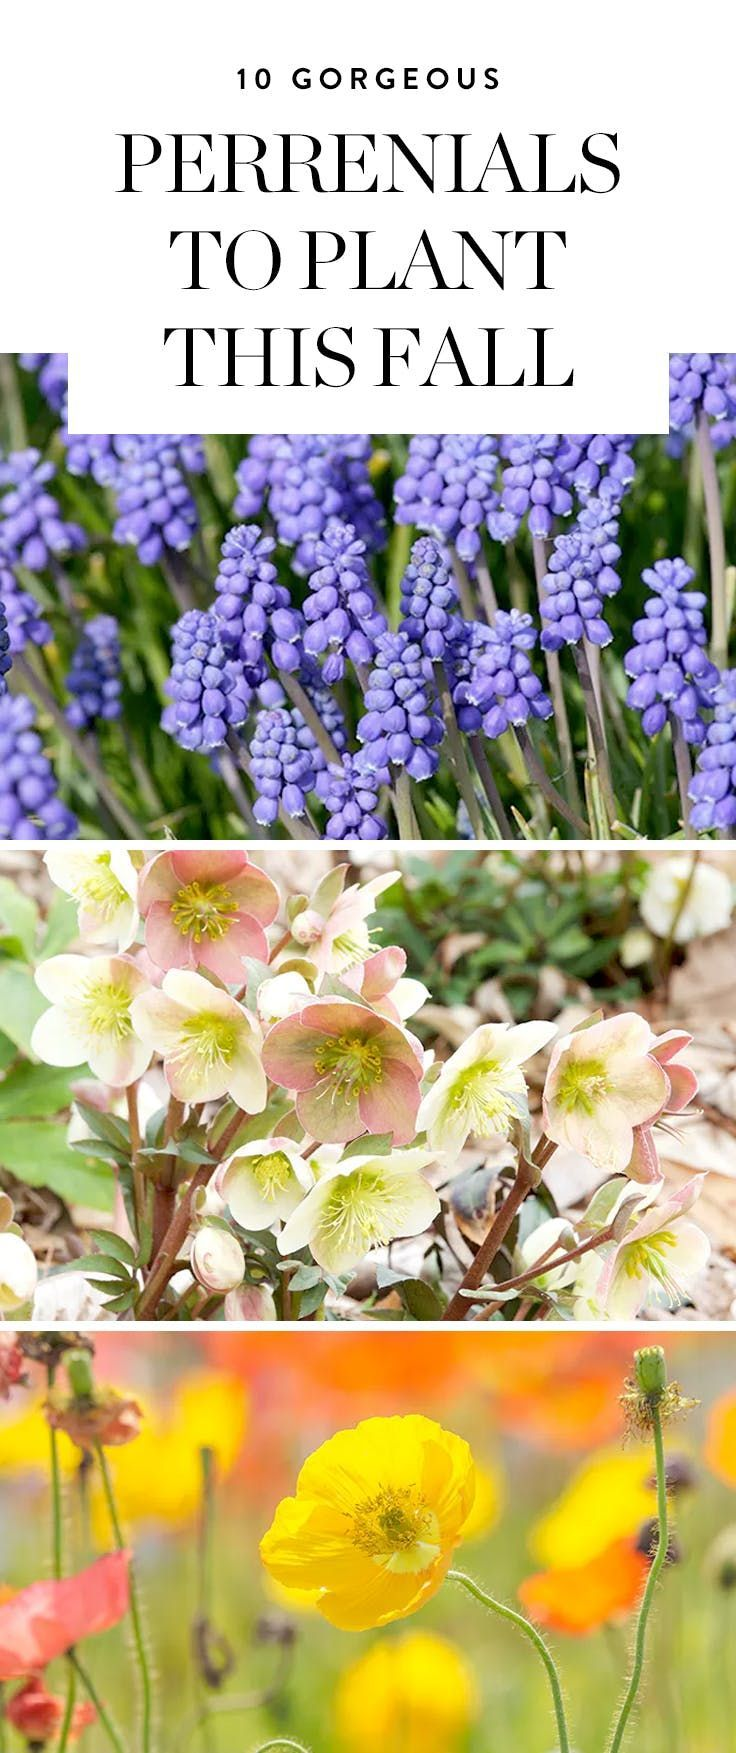 The big list of self watering planters for stylish gardening anywhere - 10 Gorgeous Perennials To Plant This Fall